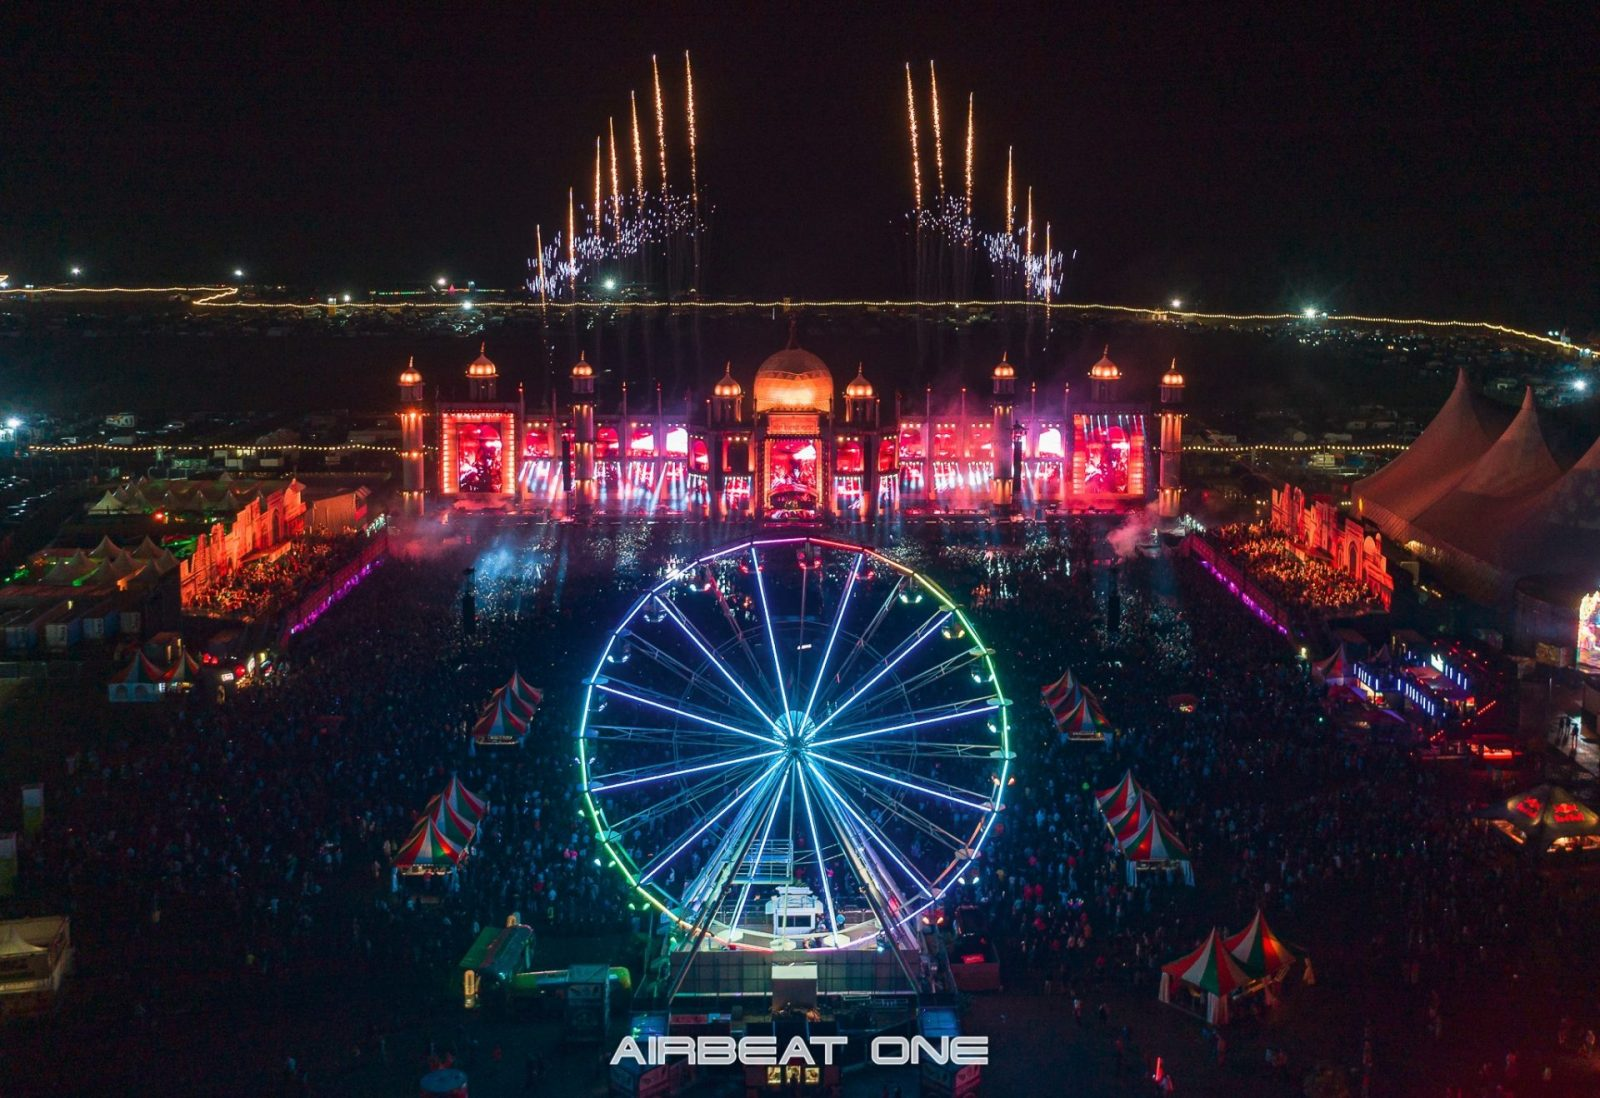 AIRBEAT ONE Festival 2020 - First Artist Announcement